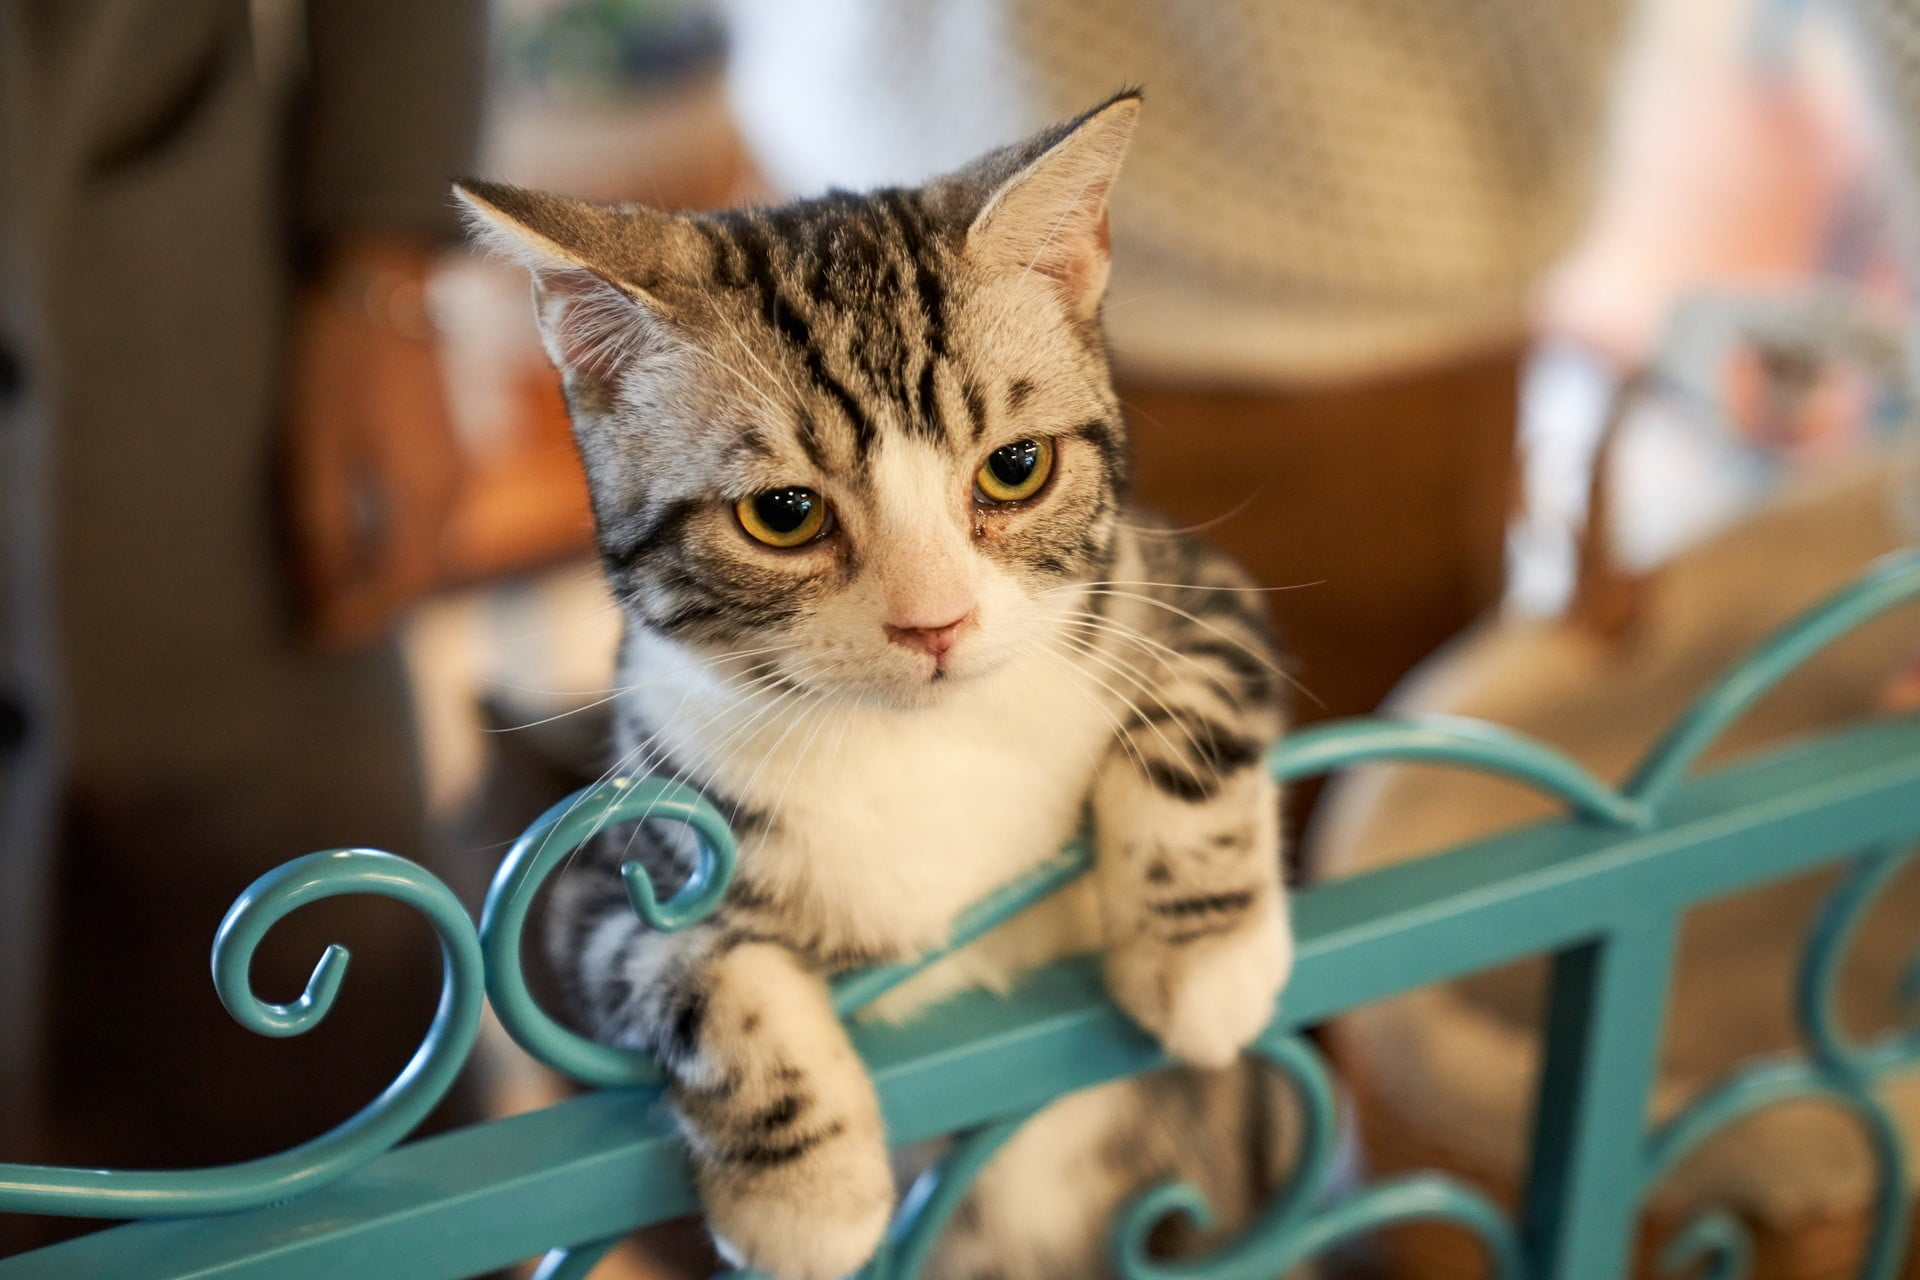 Cat leaning against a metal gate